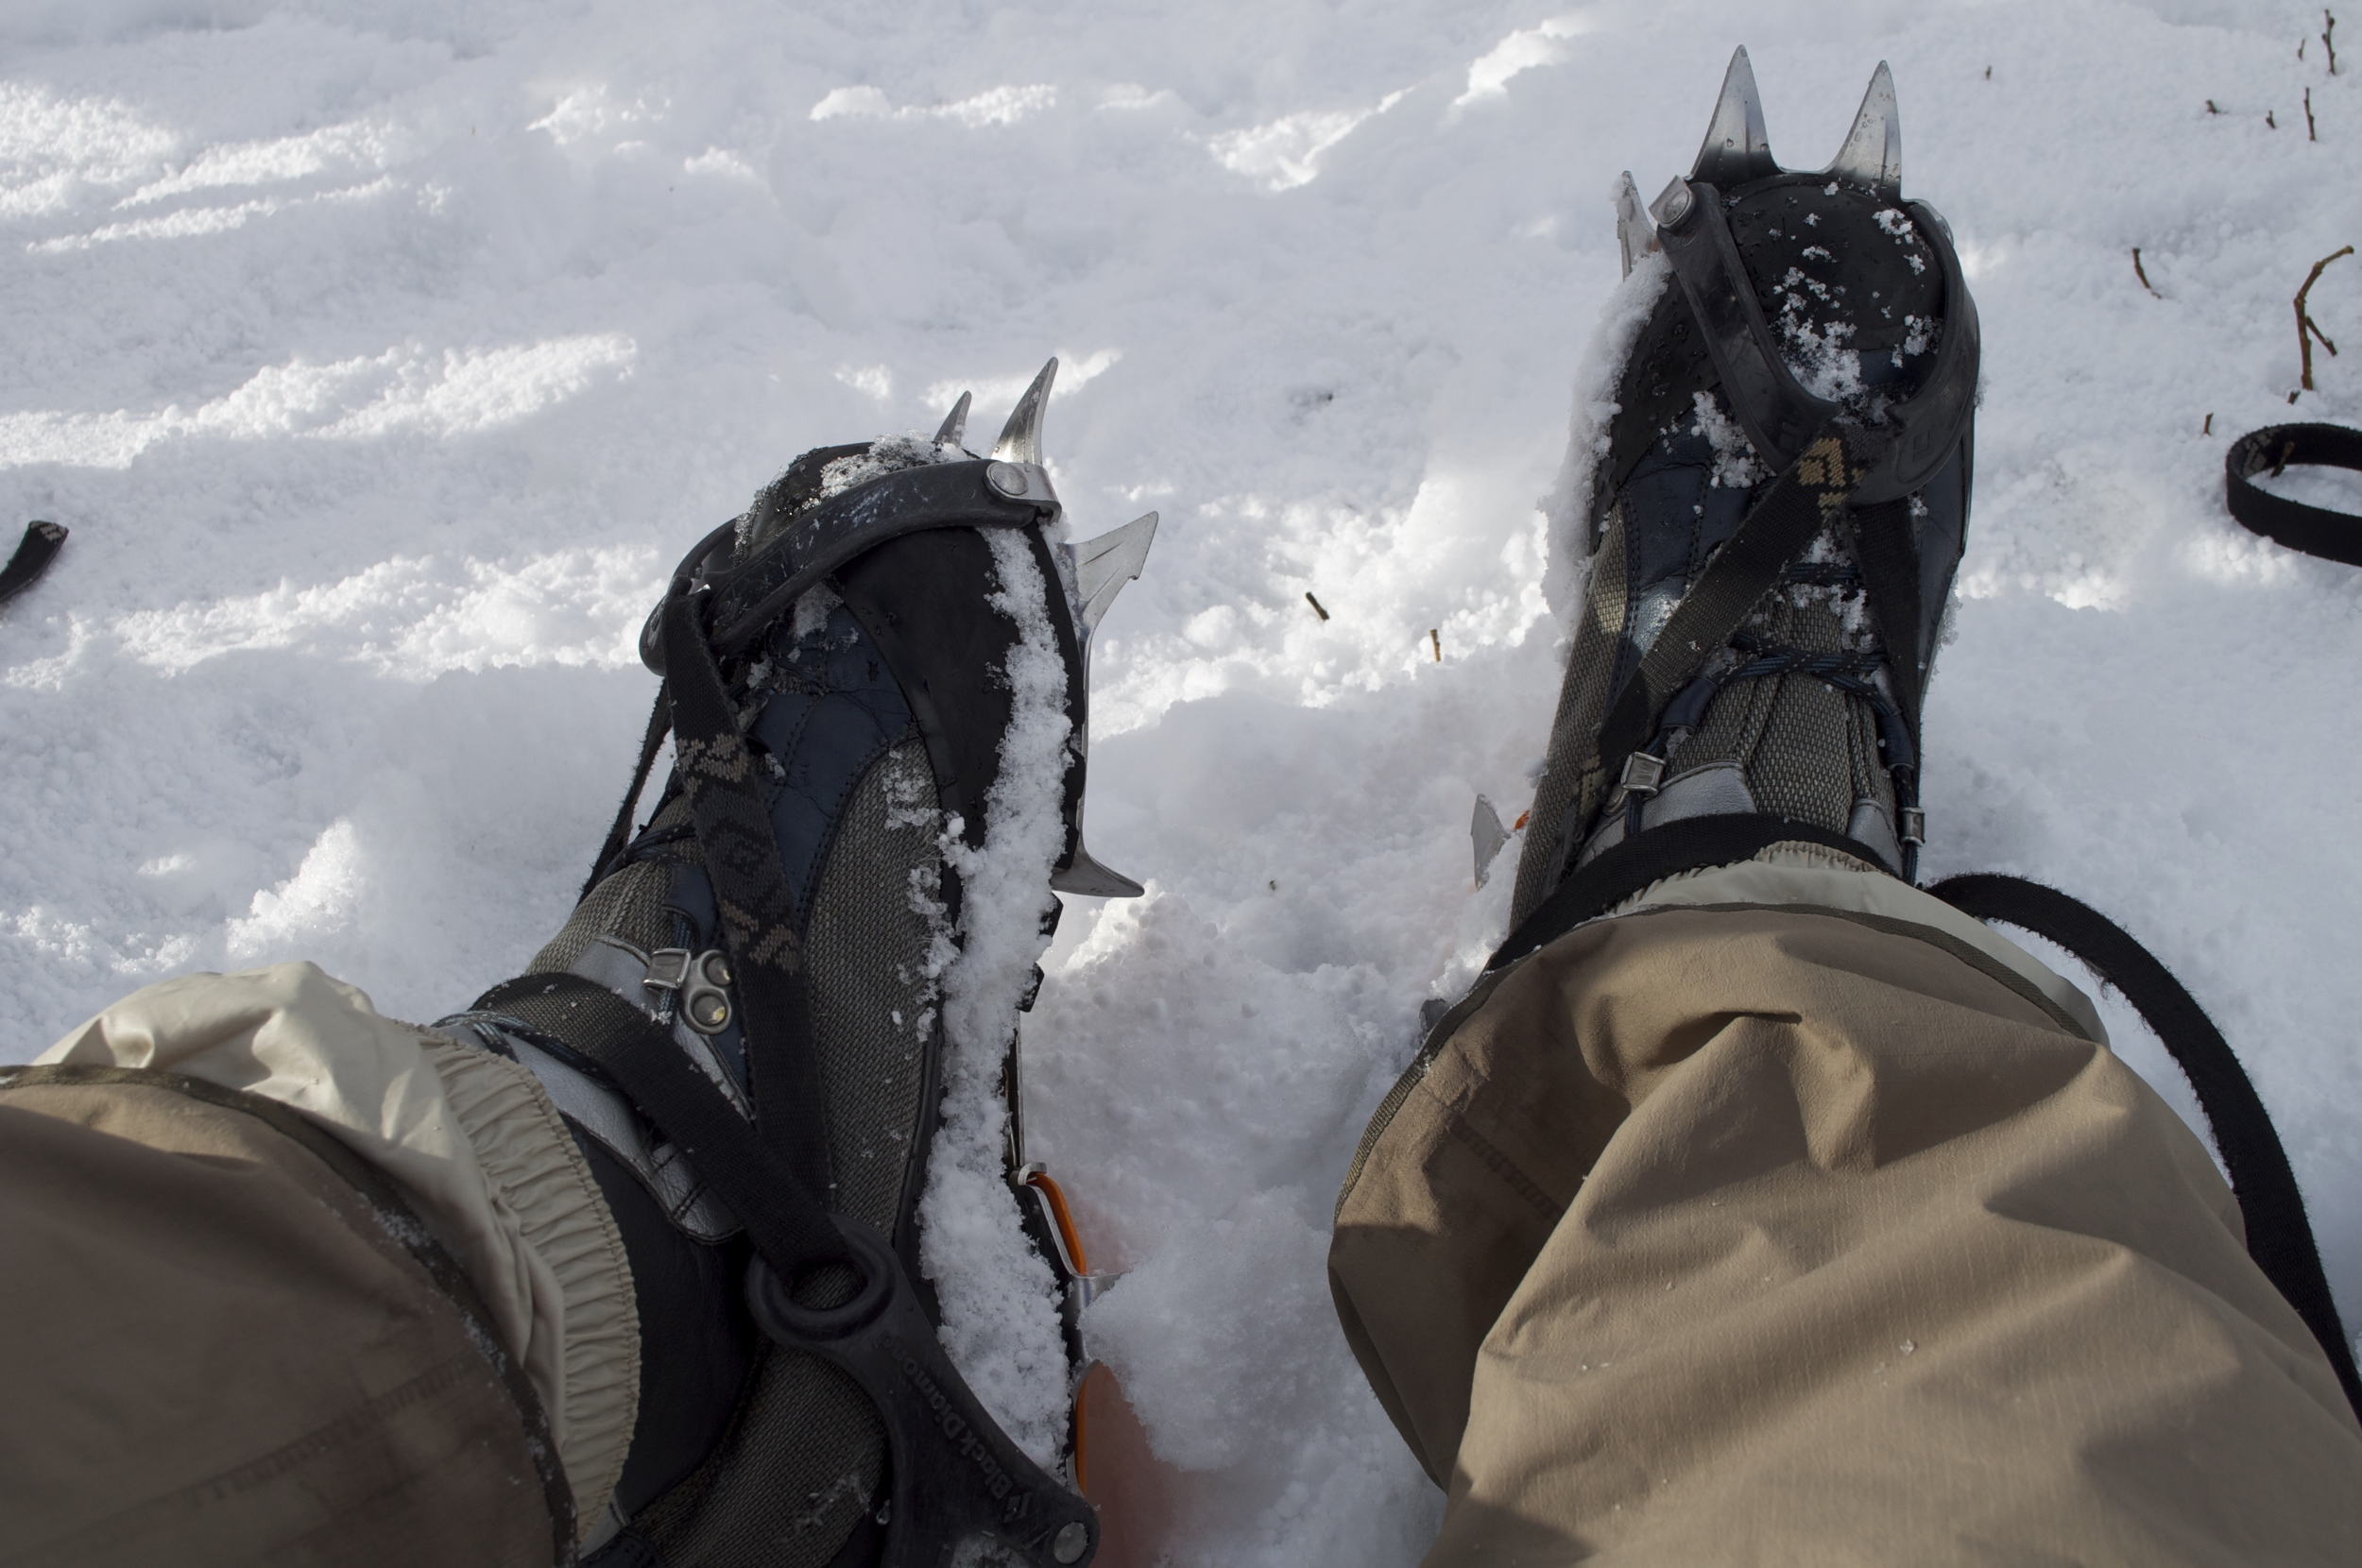 Crampon's on our hiking boots.